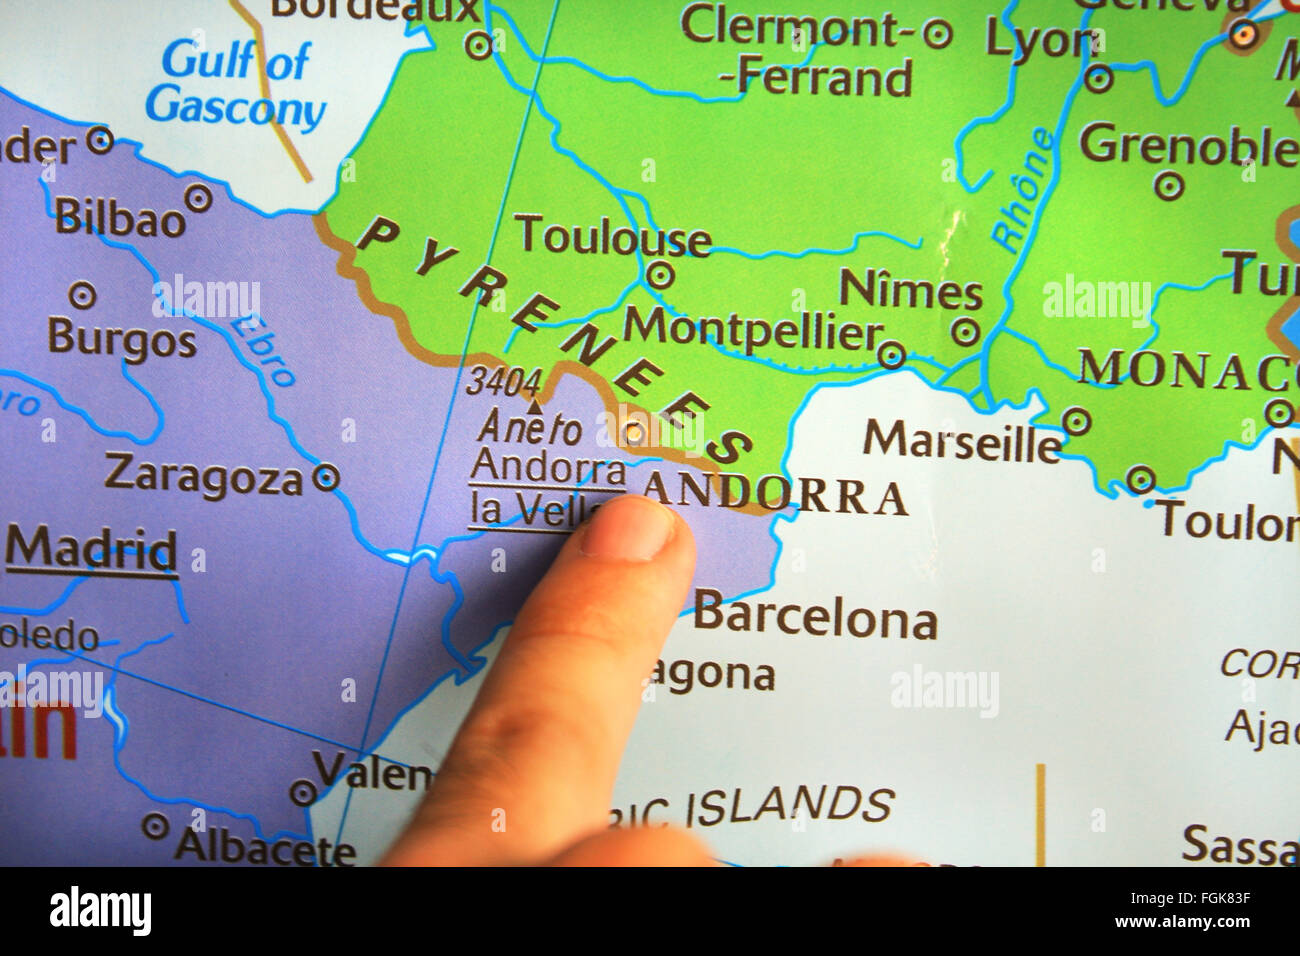 bay of biscay map europe html bay usa states map collections